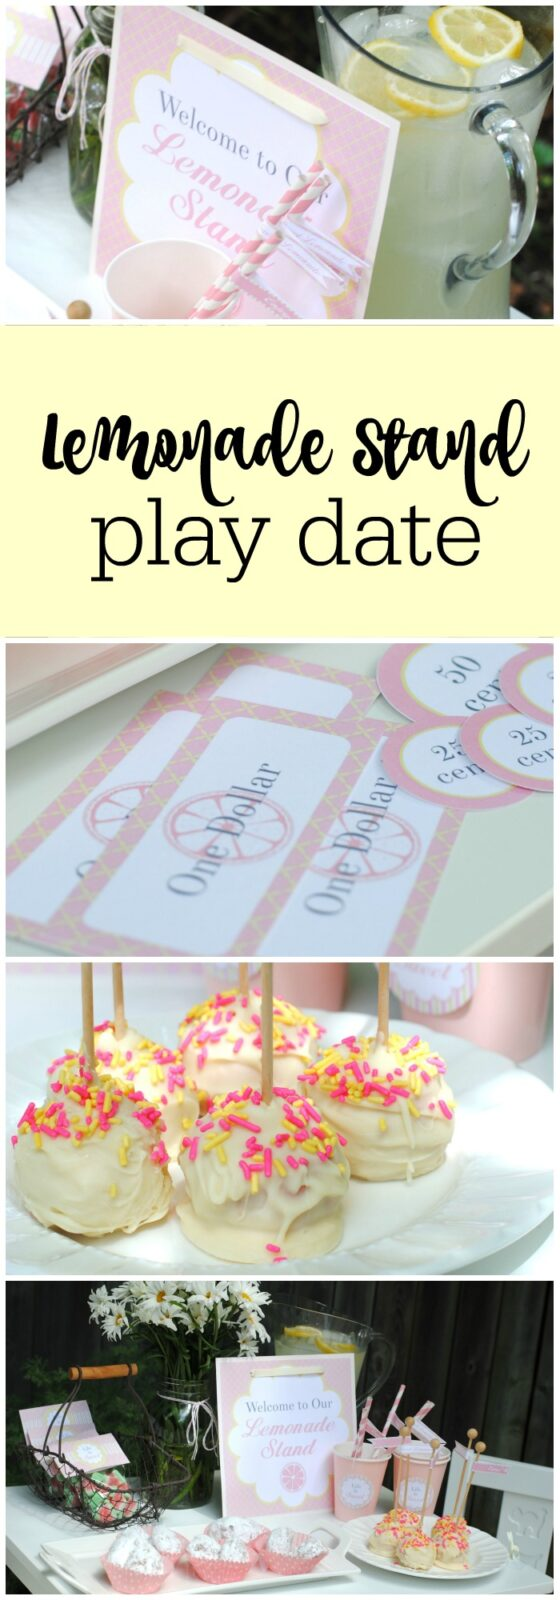 So cute - lemonade stand play date with free printables featured on The Party Teacher